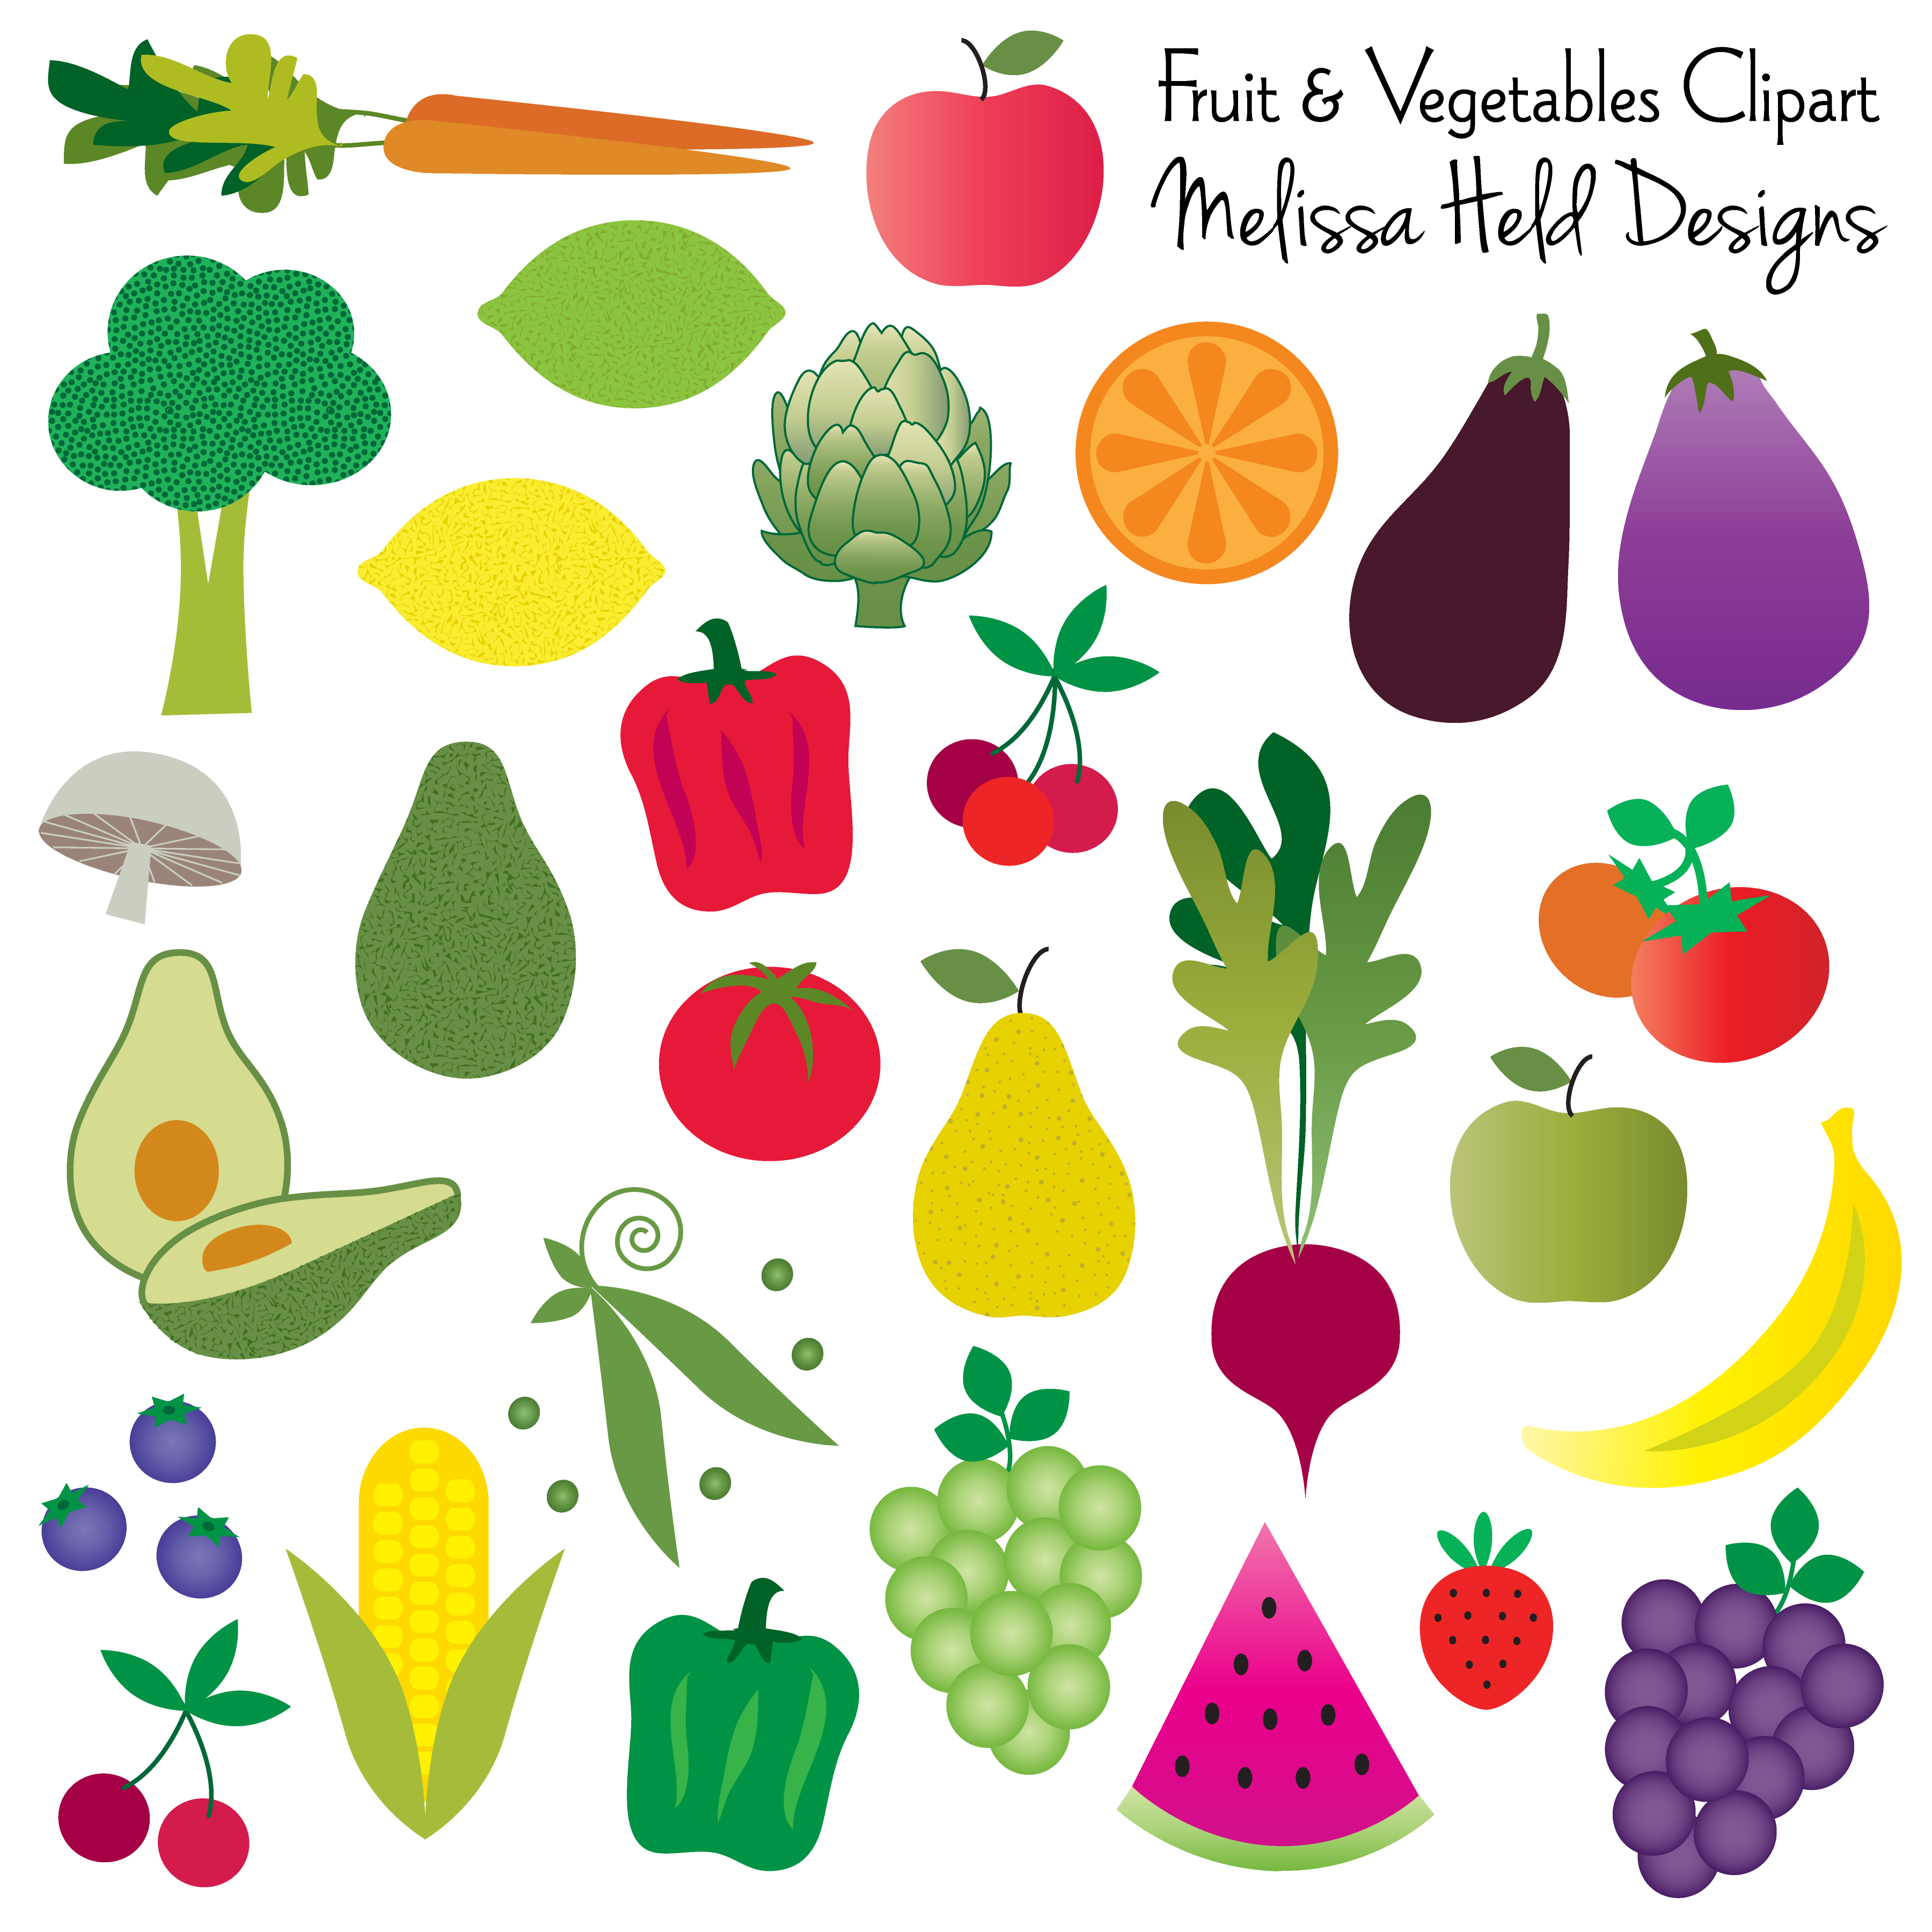 fruit and vegetables clipart bullet and scrapbook rh pinterest com fruits and vegetables clipart png fruits and vegetables clipart free